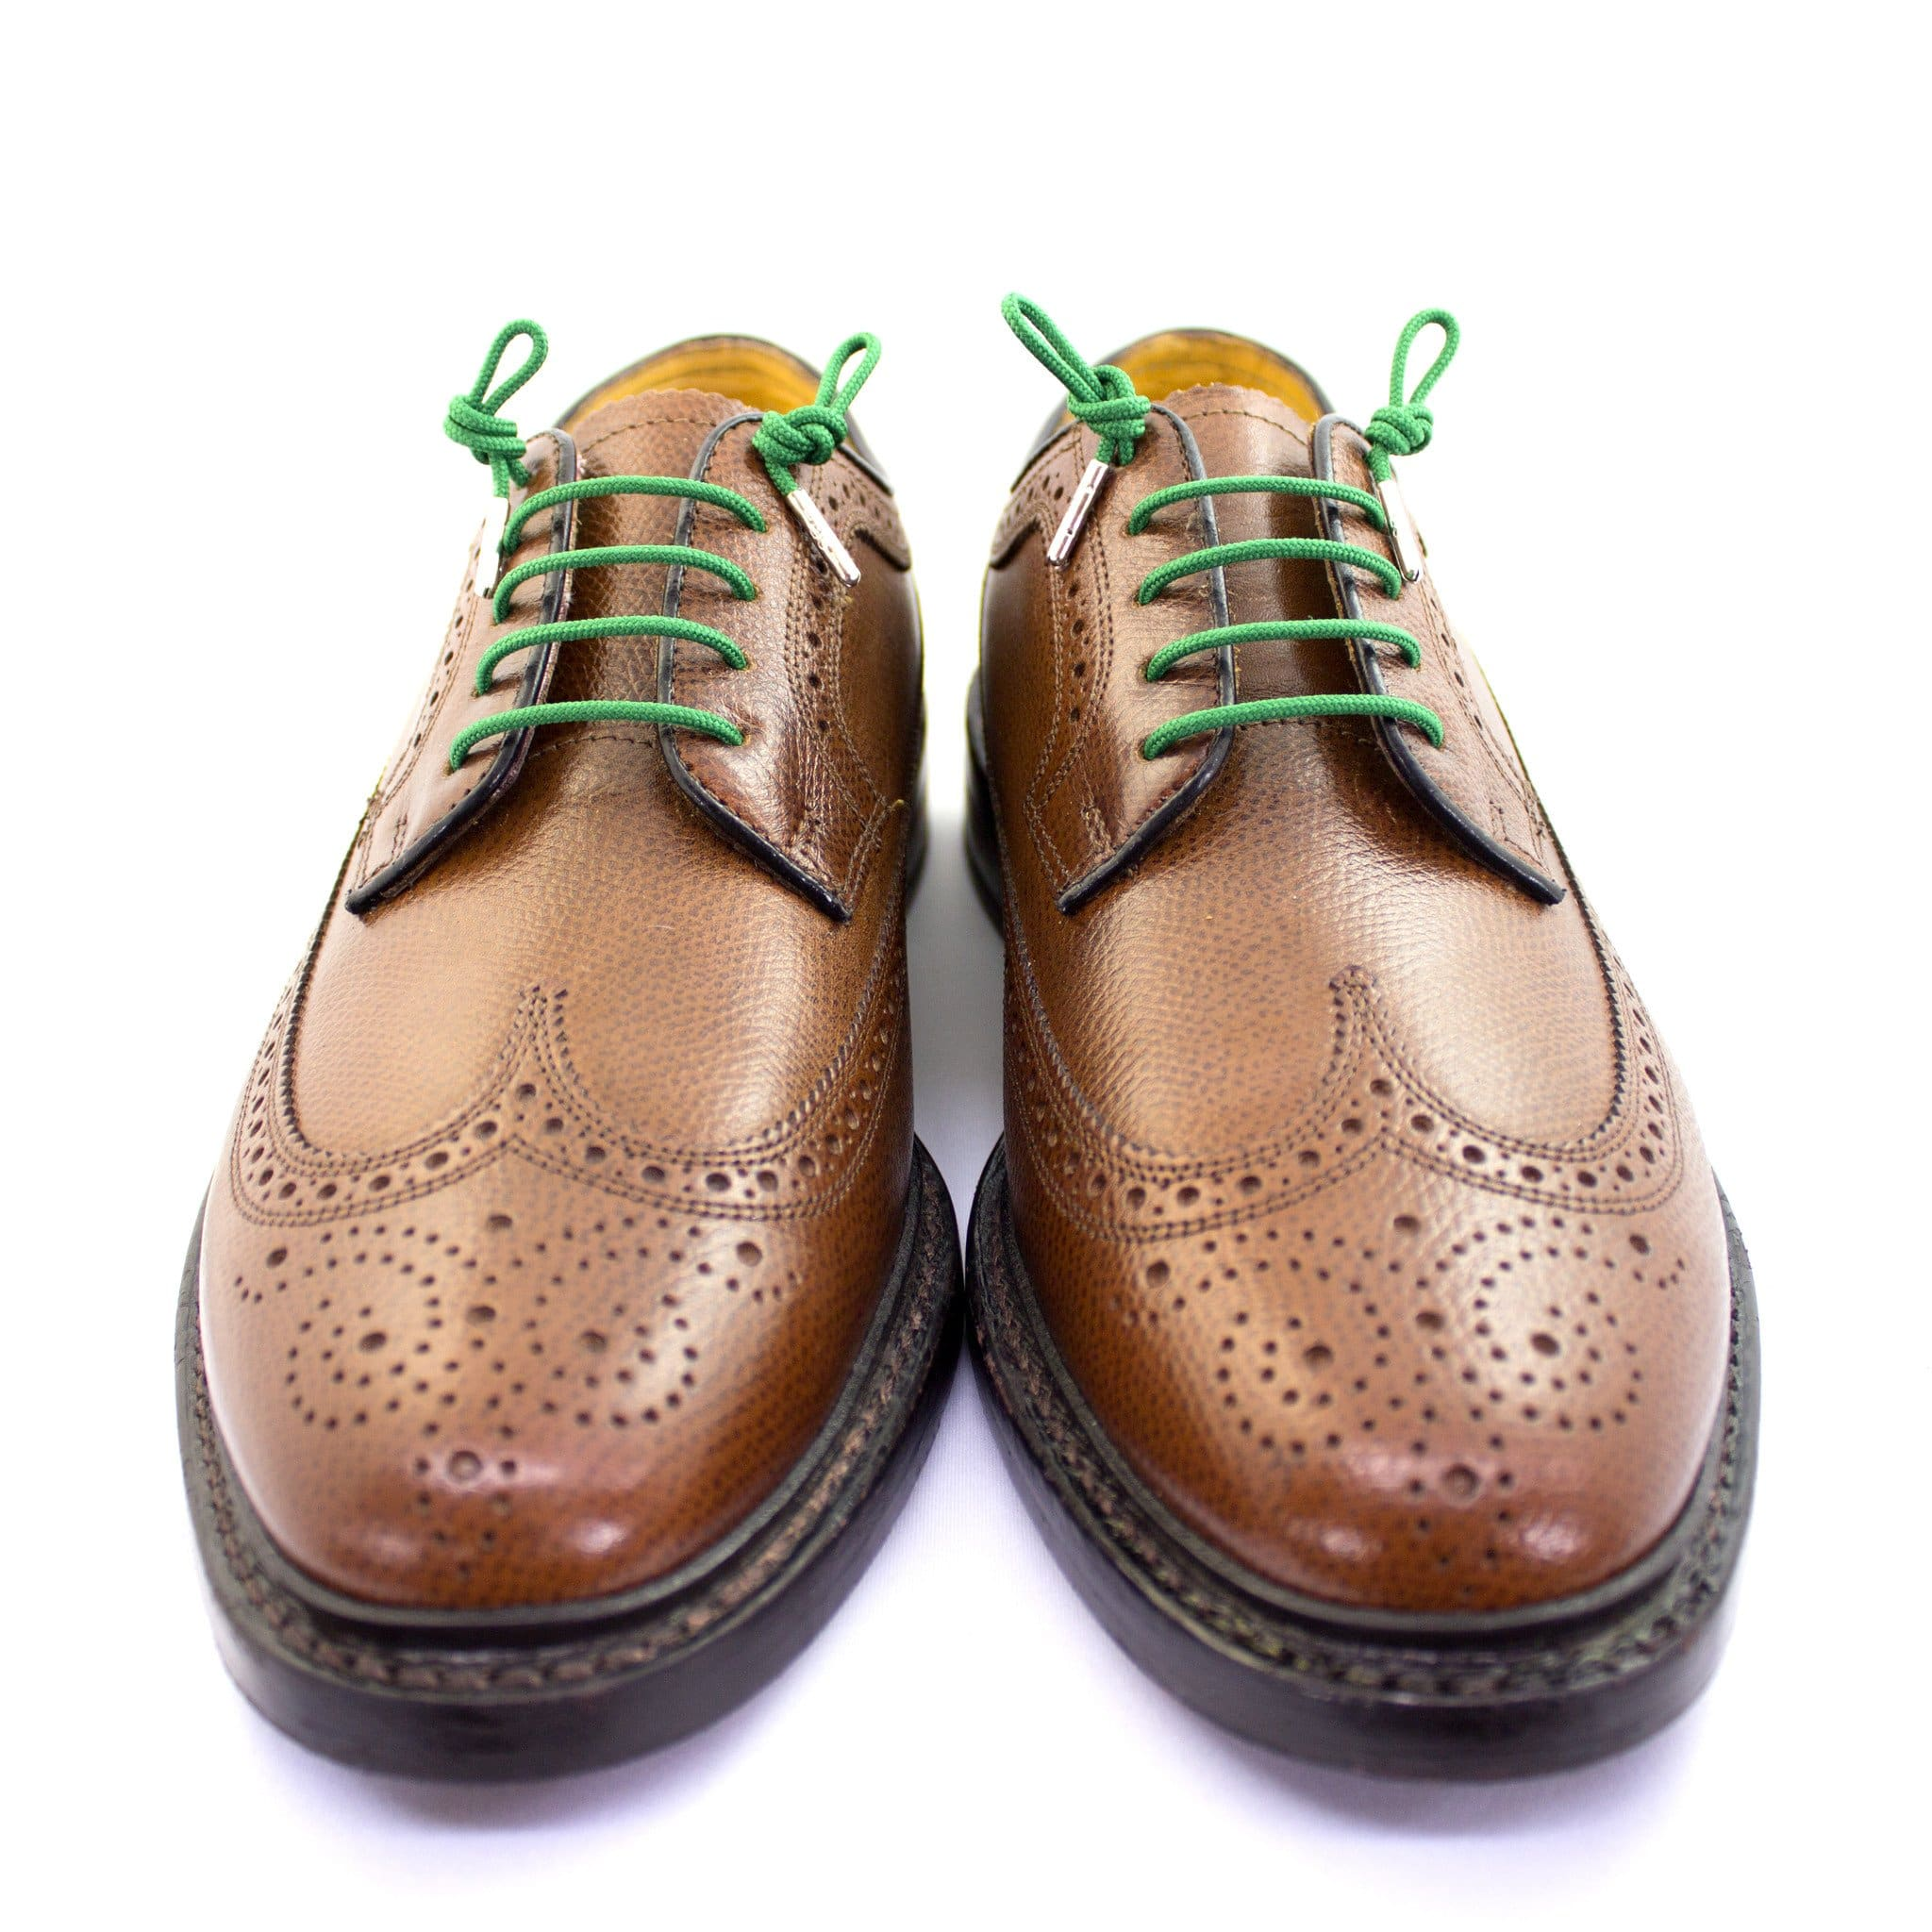 "Emerald green laces for dress shoes, Length: 27""/69cm-Stolen Riches"